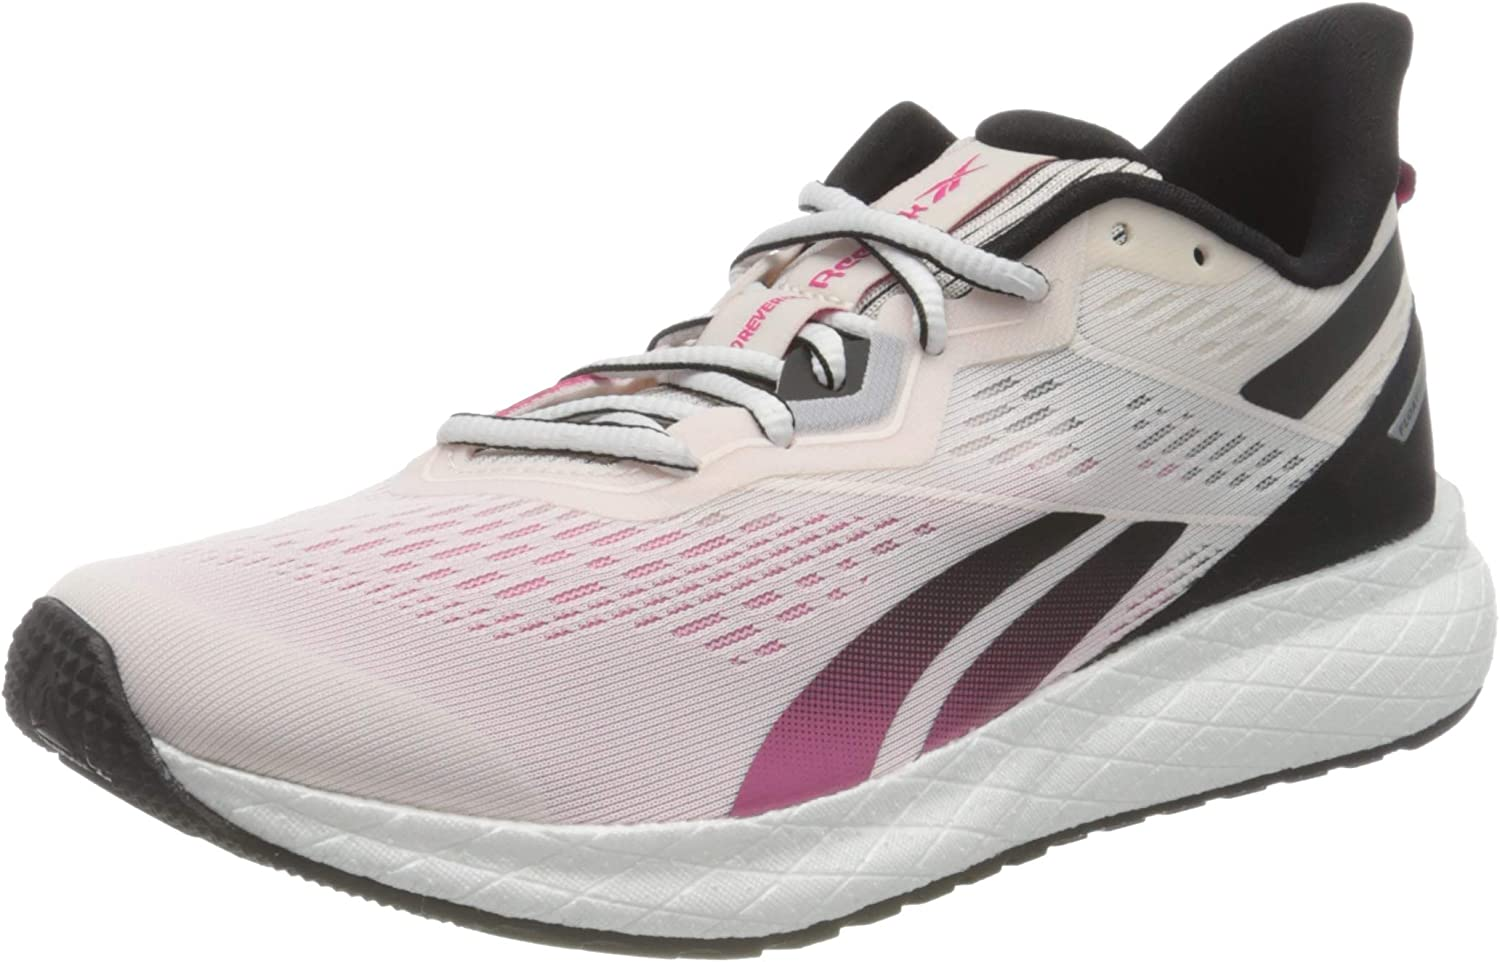 Reebok Max 66% OFF Women's Competition Running San Francisco Mall Shoes